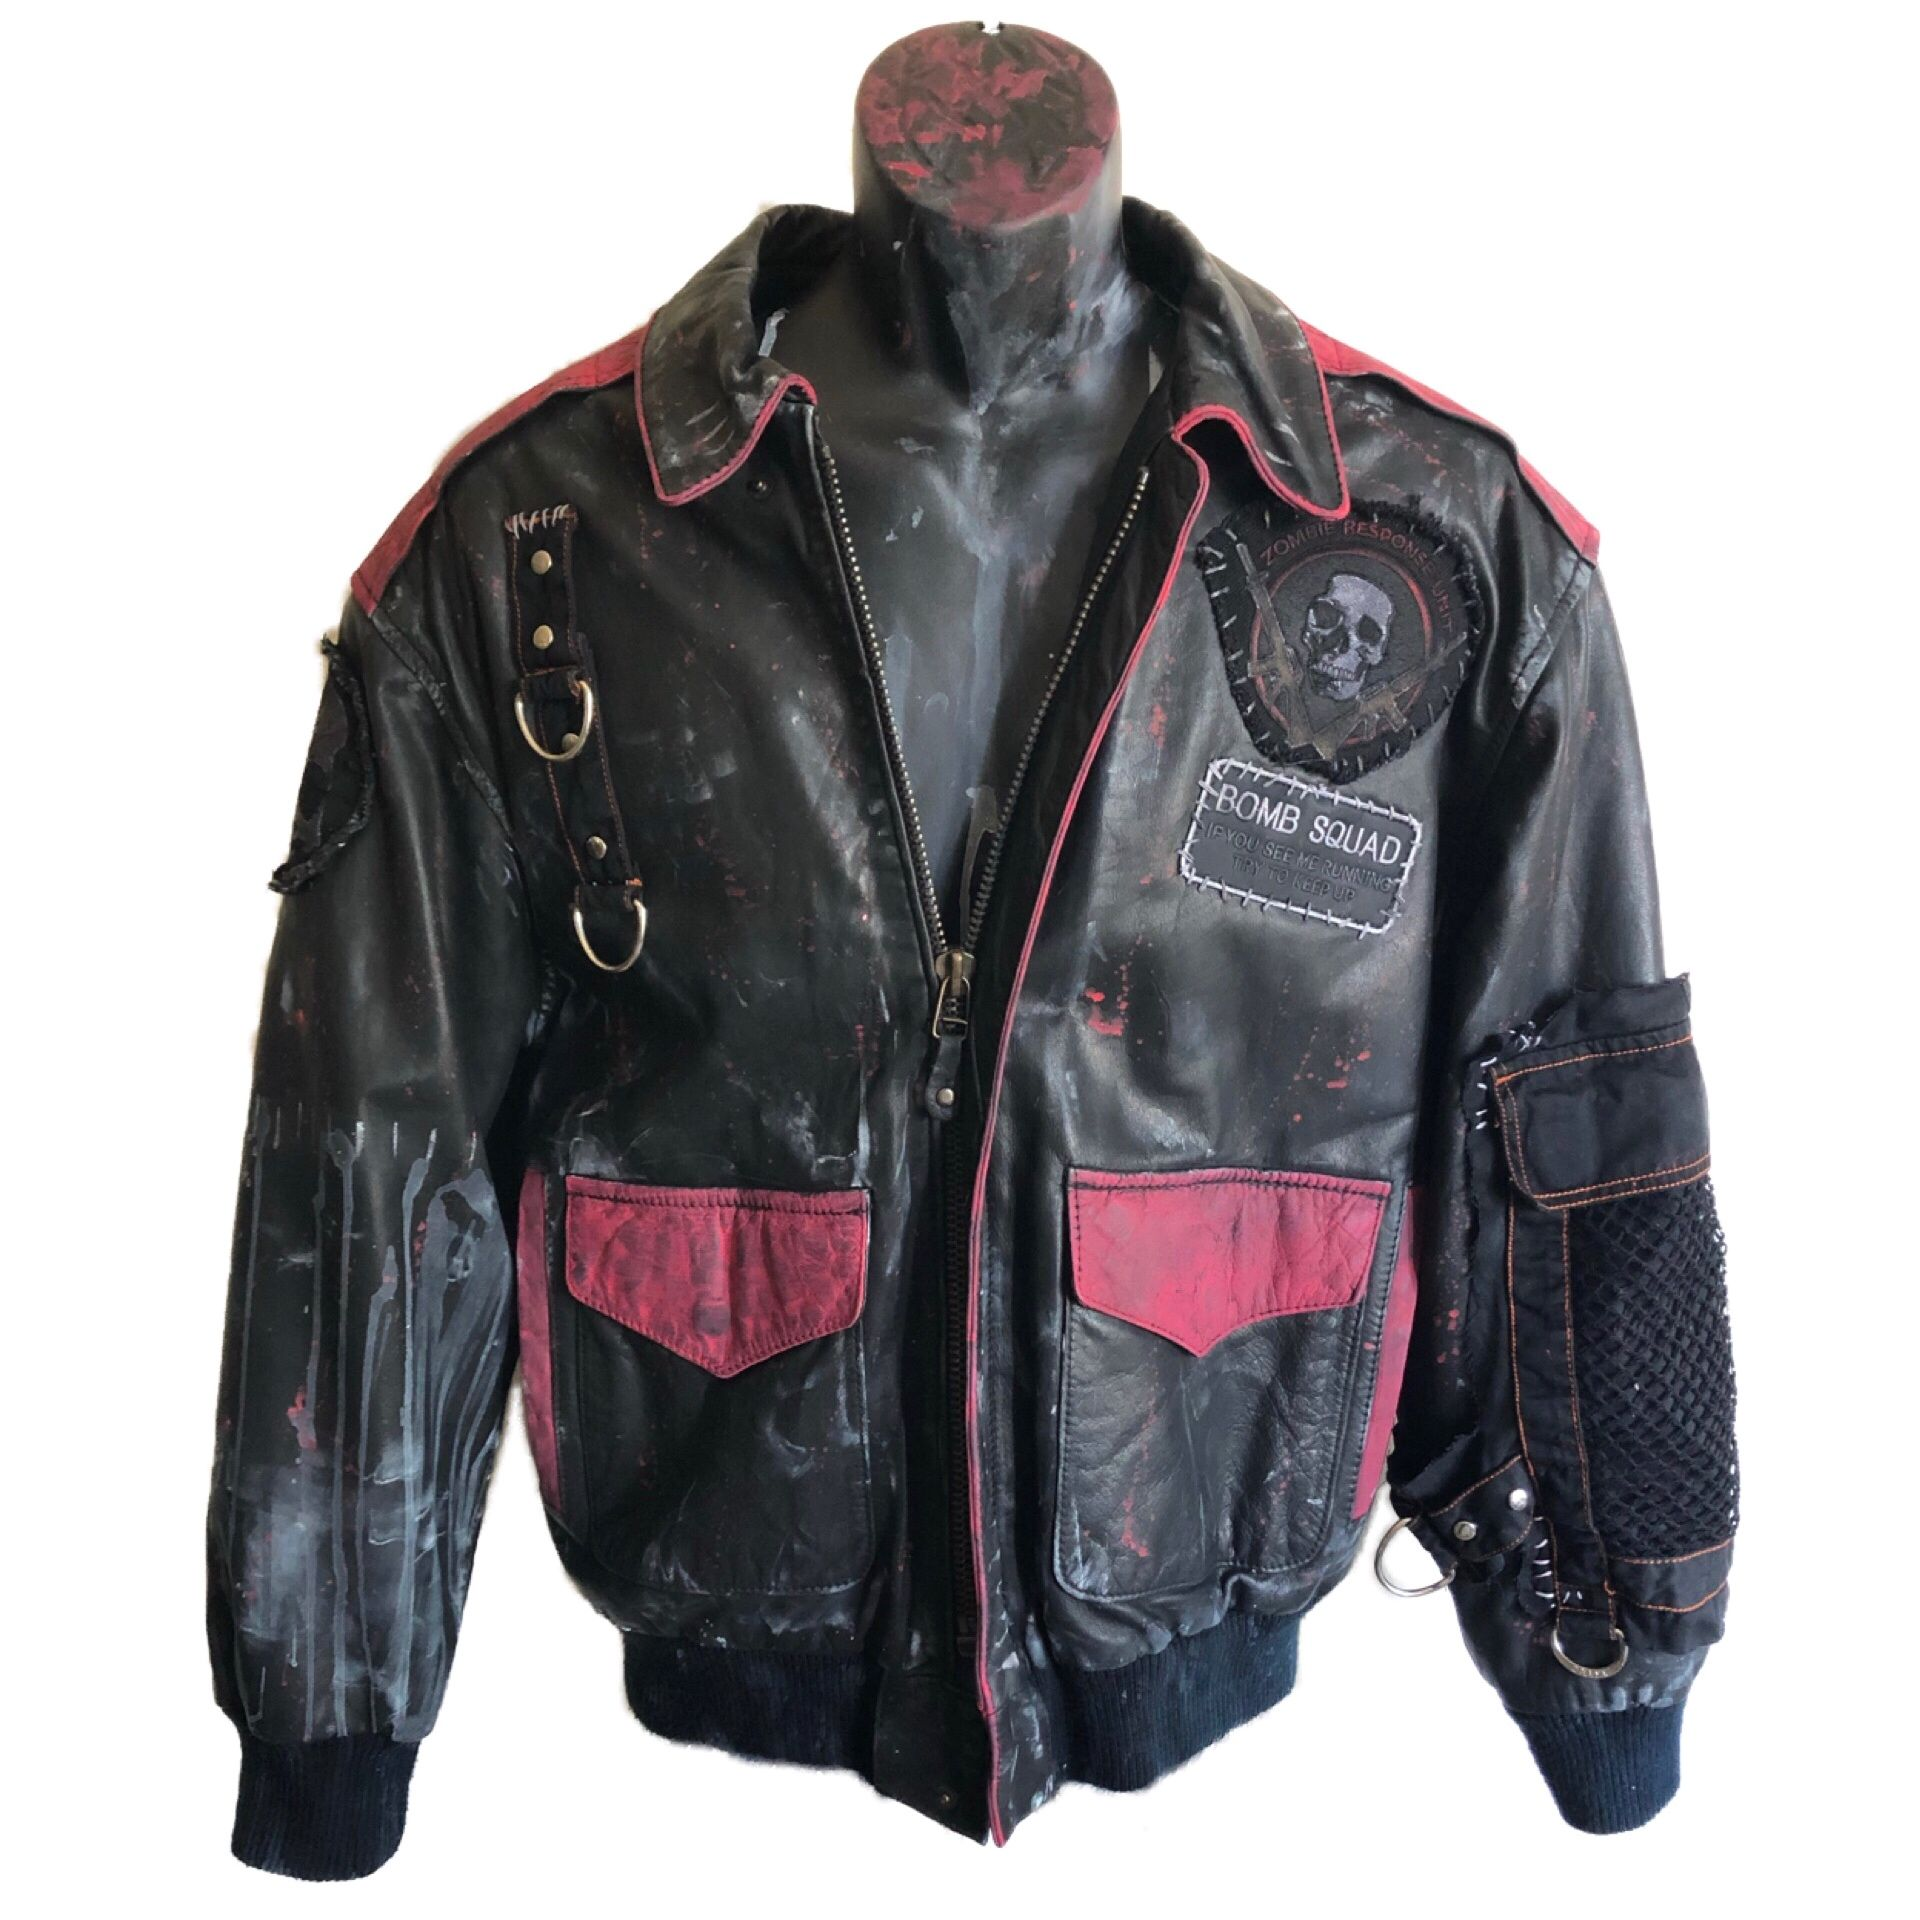 Bomber Ghost Jacket By Chad Cherry In 2021 Custom Clothes Horror Clothes Punk Subculture [ 1920 x 1920 Pixel ]